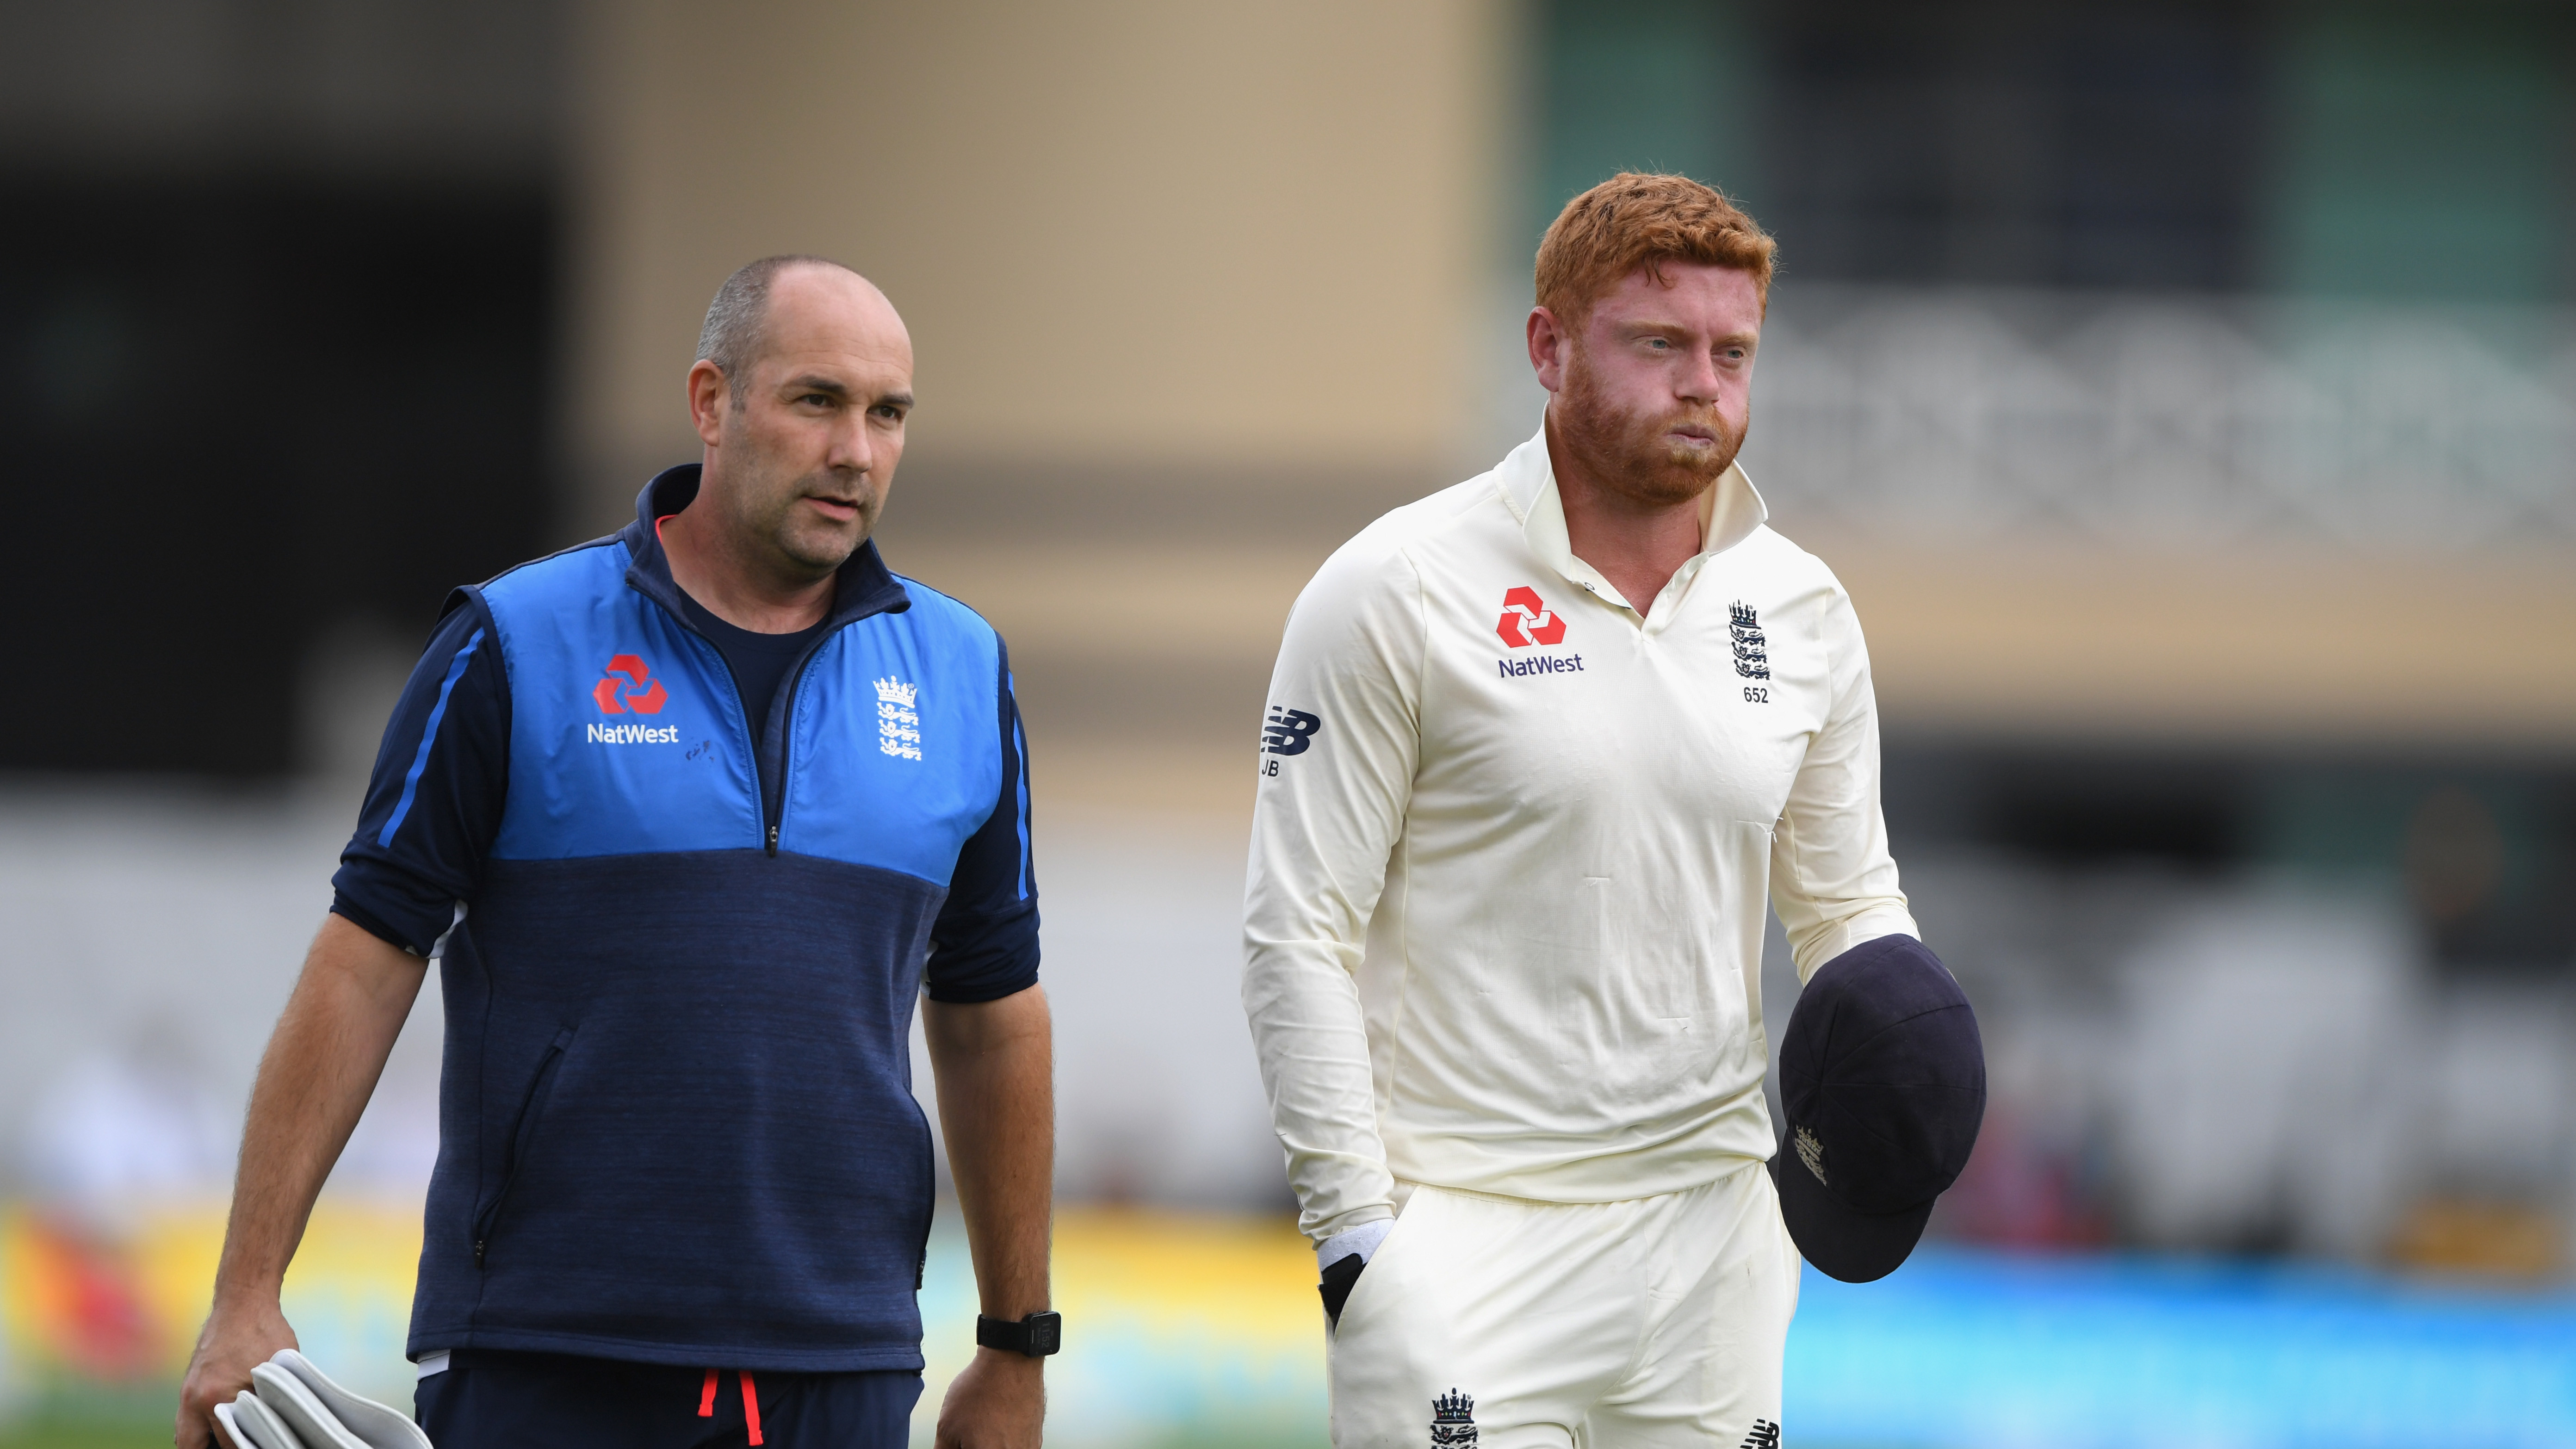 ENG vs IND 2018: Jonny Bairstow suffers fractured finger on his left hand, expected to bat in England's second innings